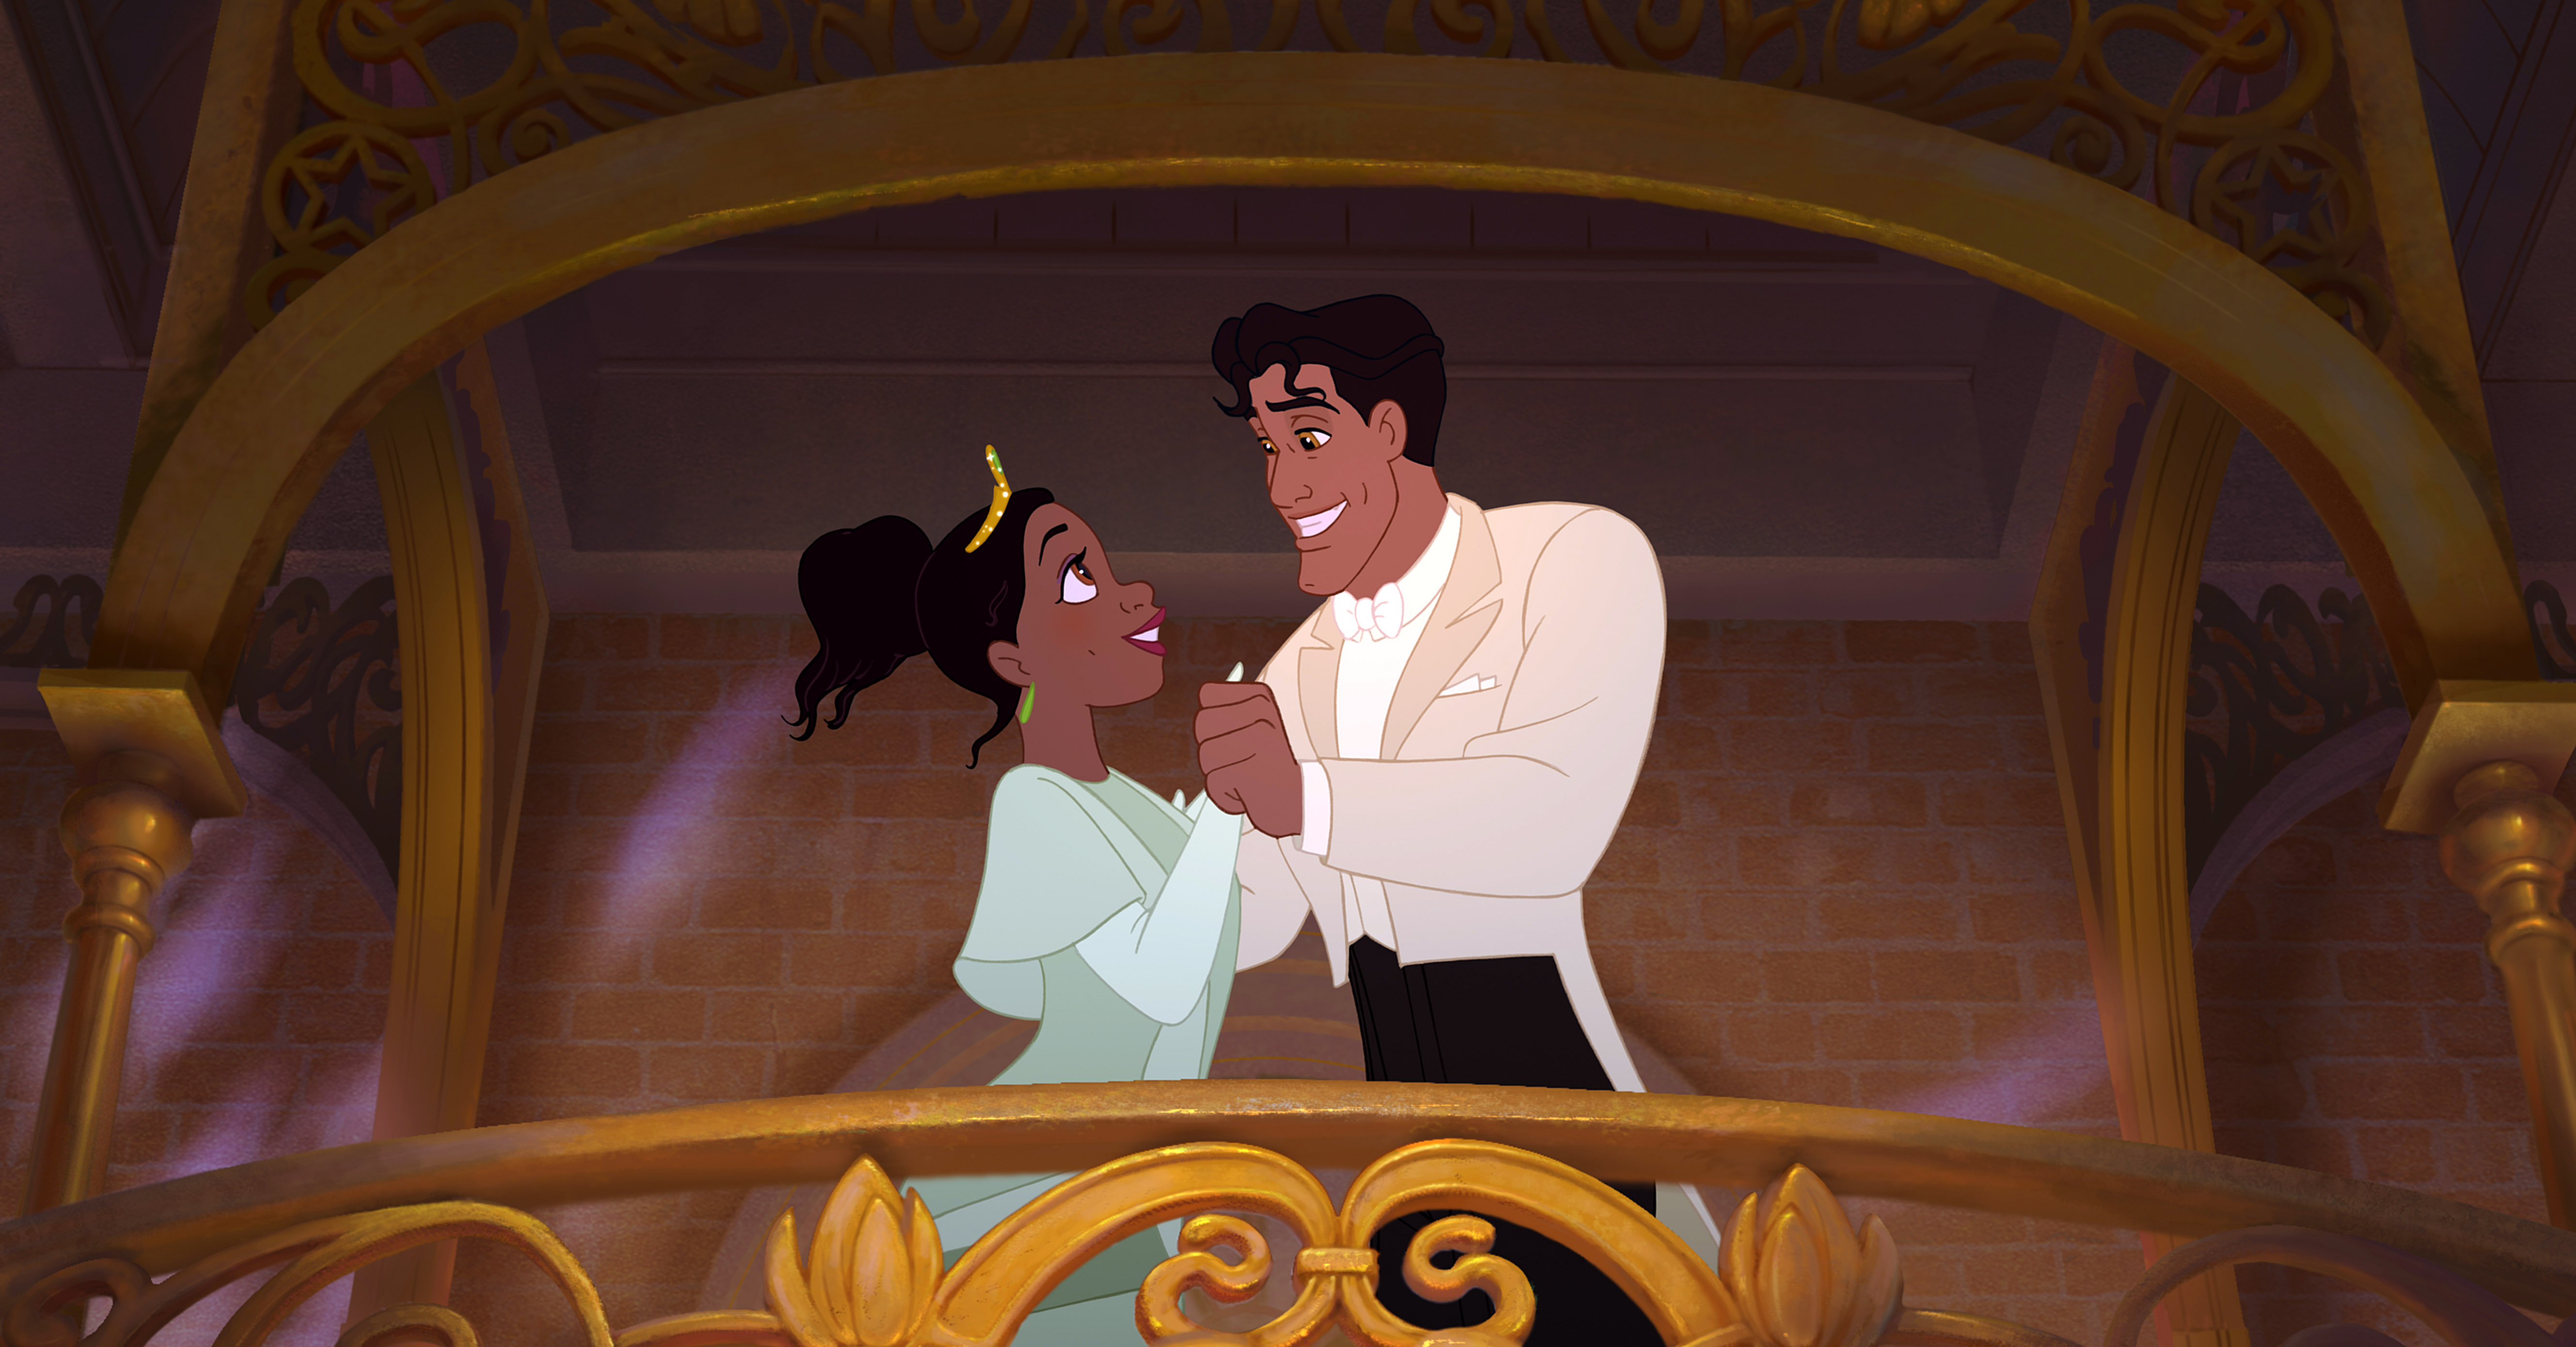 The Princess And The Frog Gave Black Girls Their First Taste Of Disney Royalty